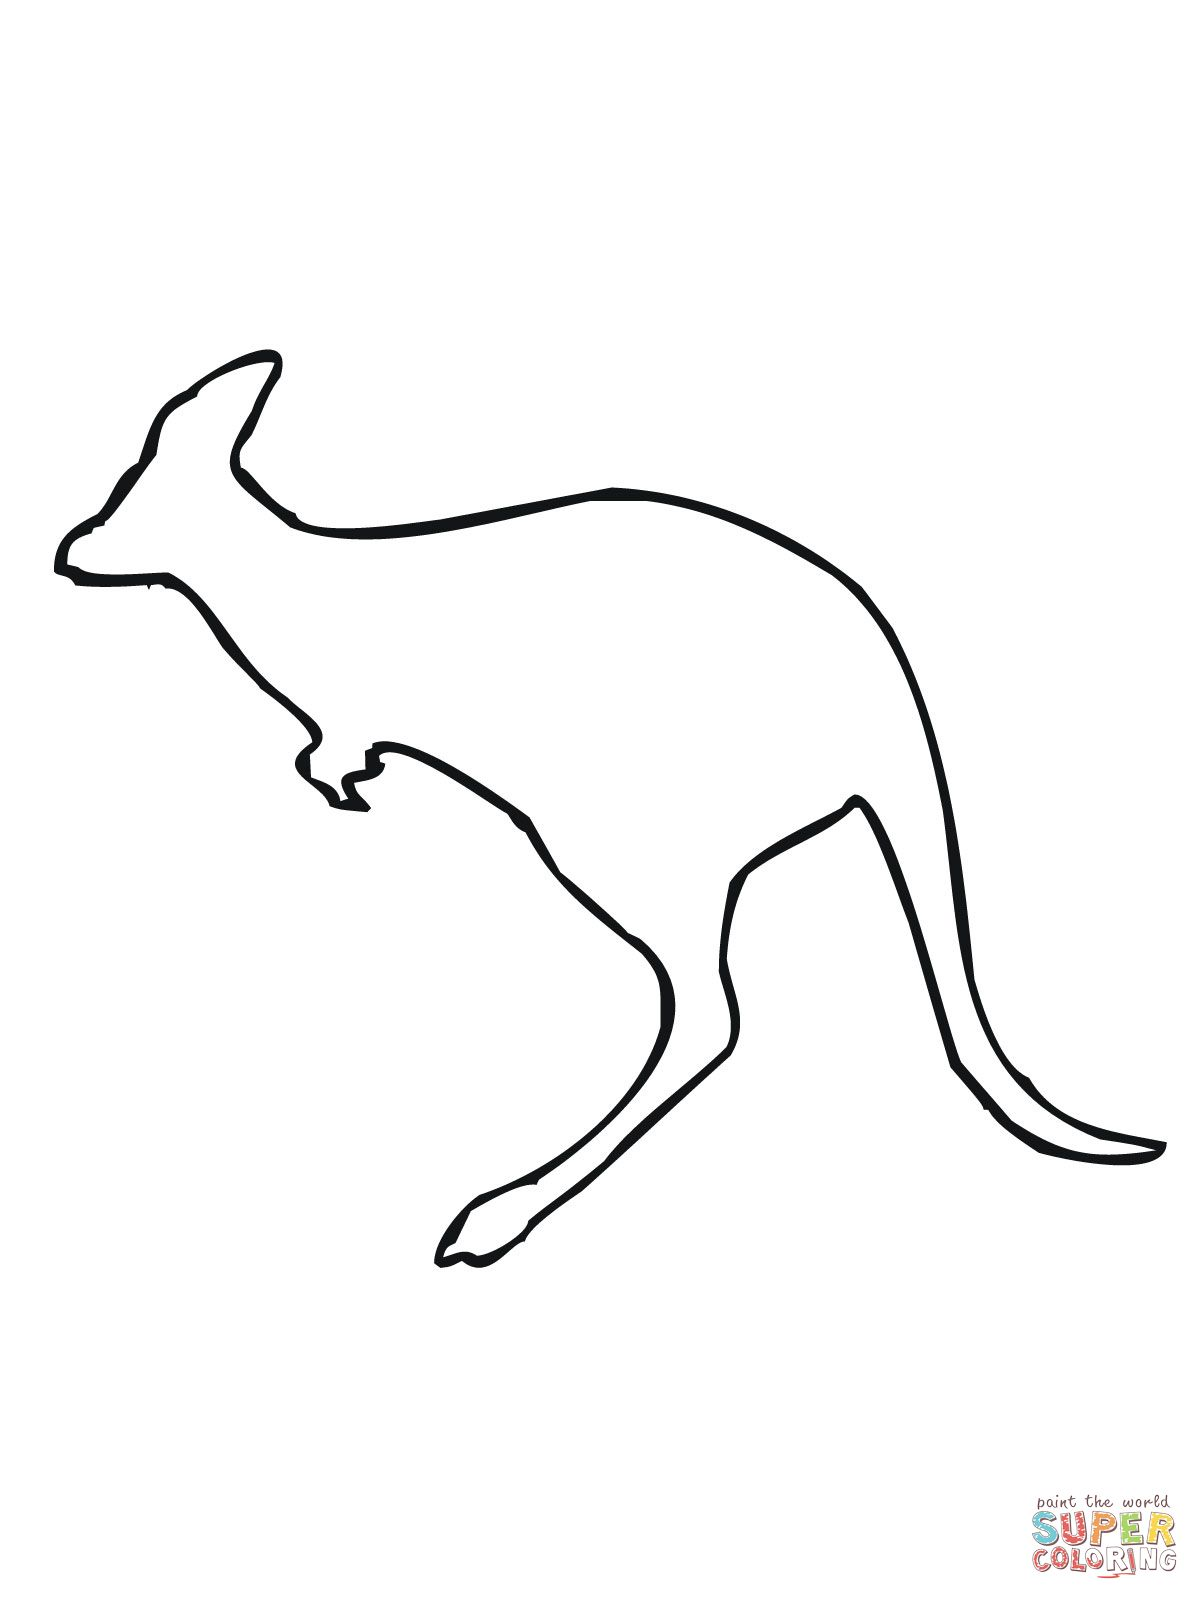 Leaping Kangaroo Outline Coloring Page